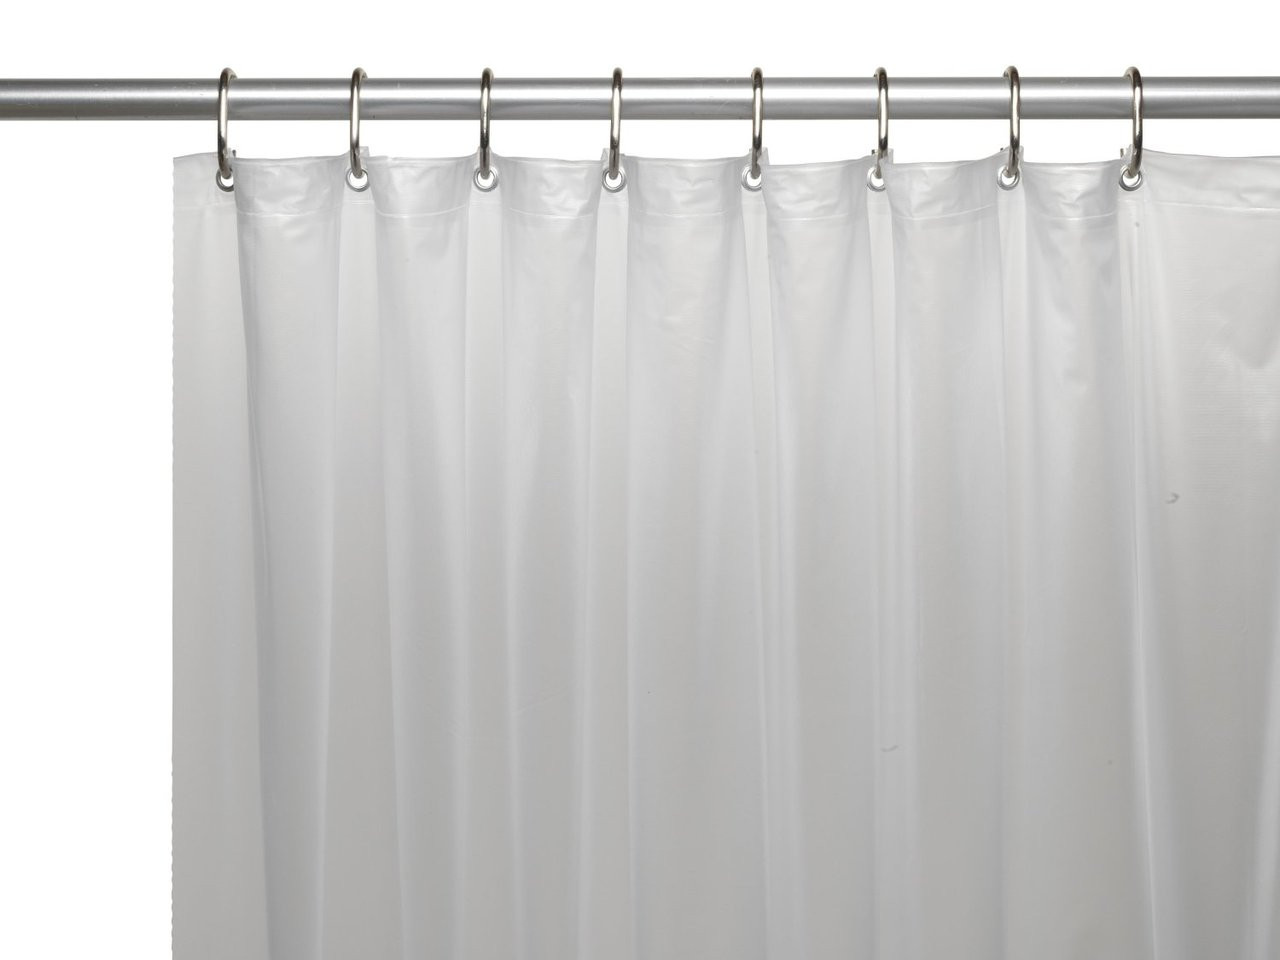 Carnation Home Fashions 3-Gauge Vinyl Shower Curtain Liner with Metal Grommets Brown